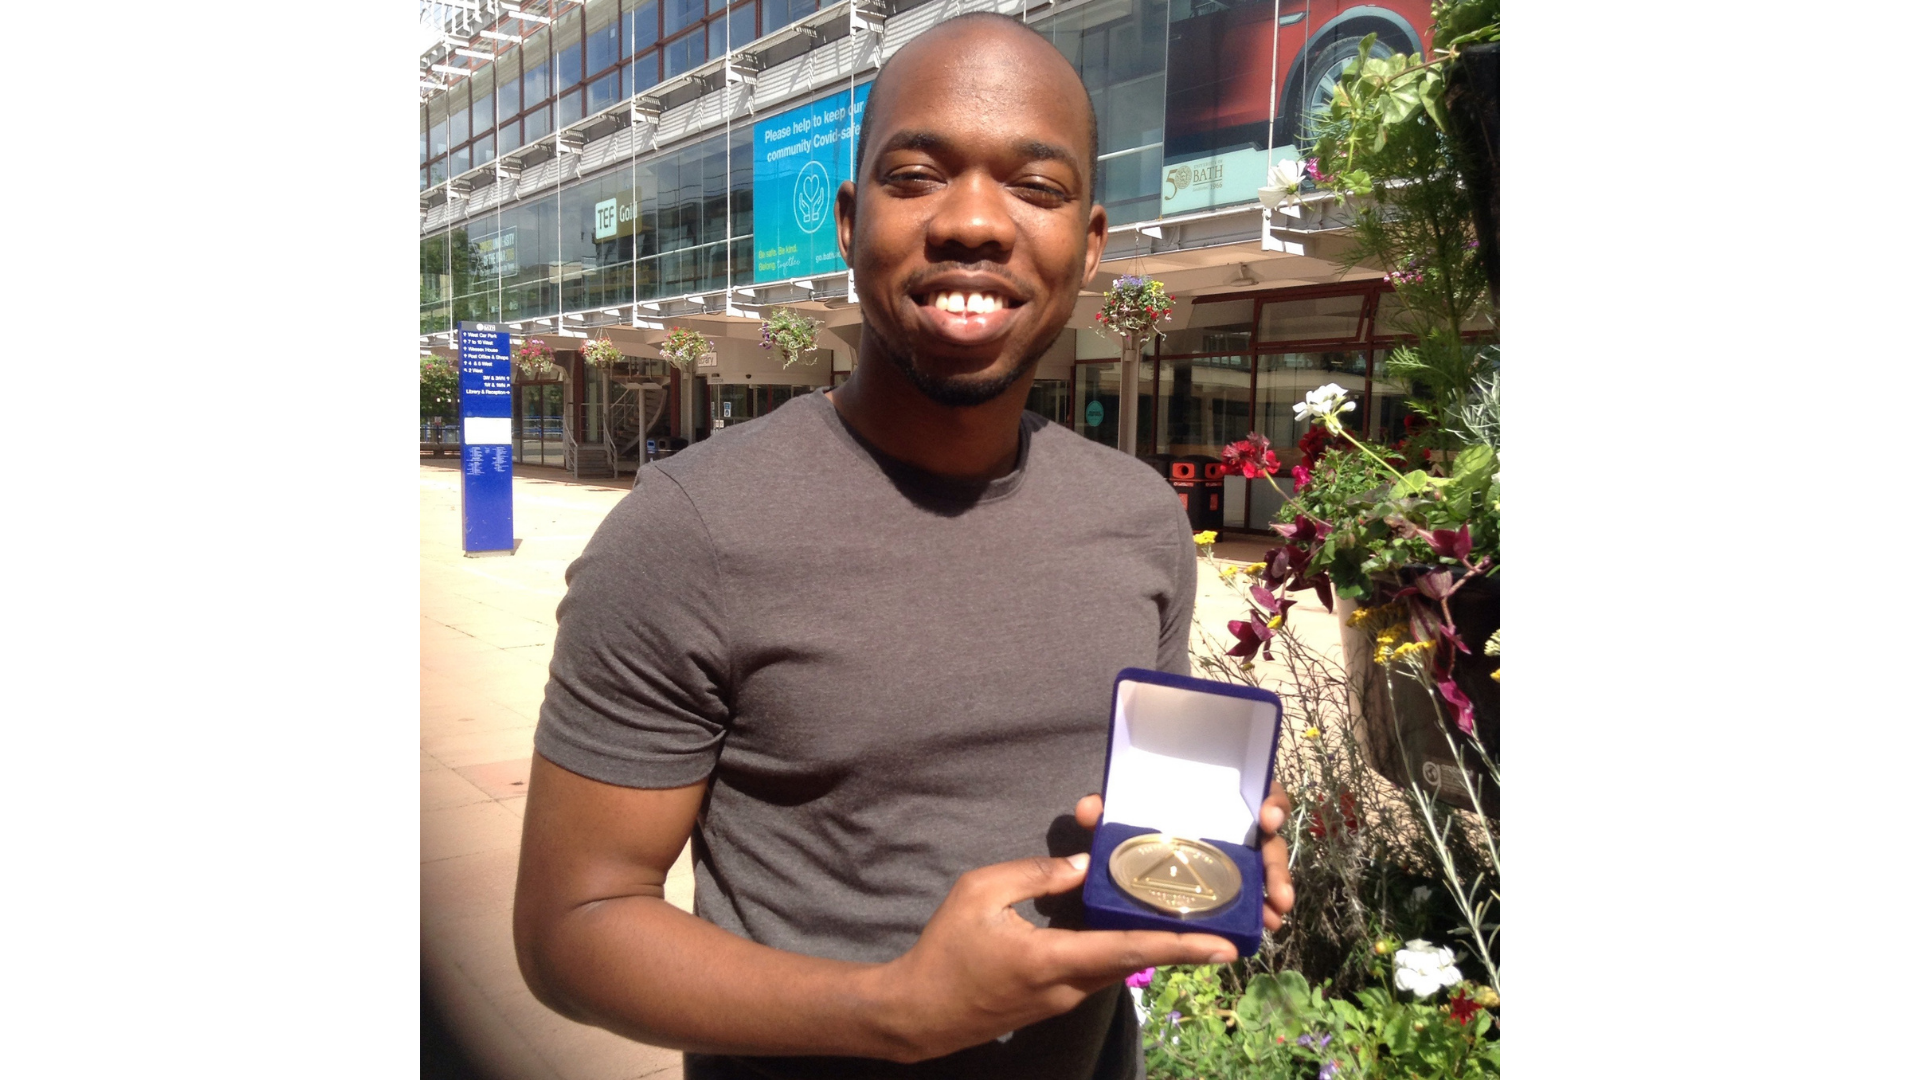 Sanjae King, holding a medal of achievement